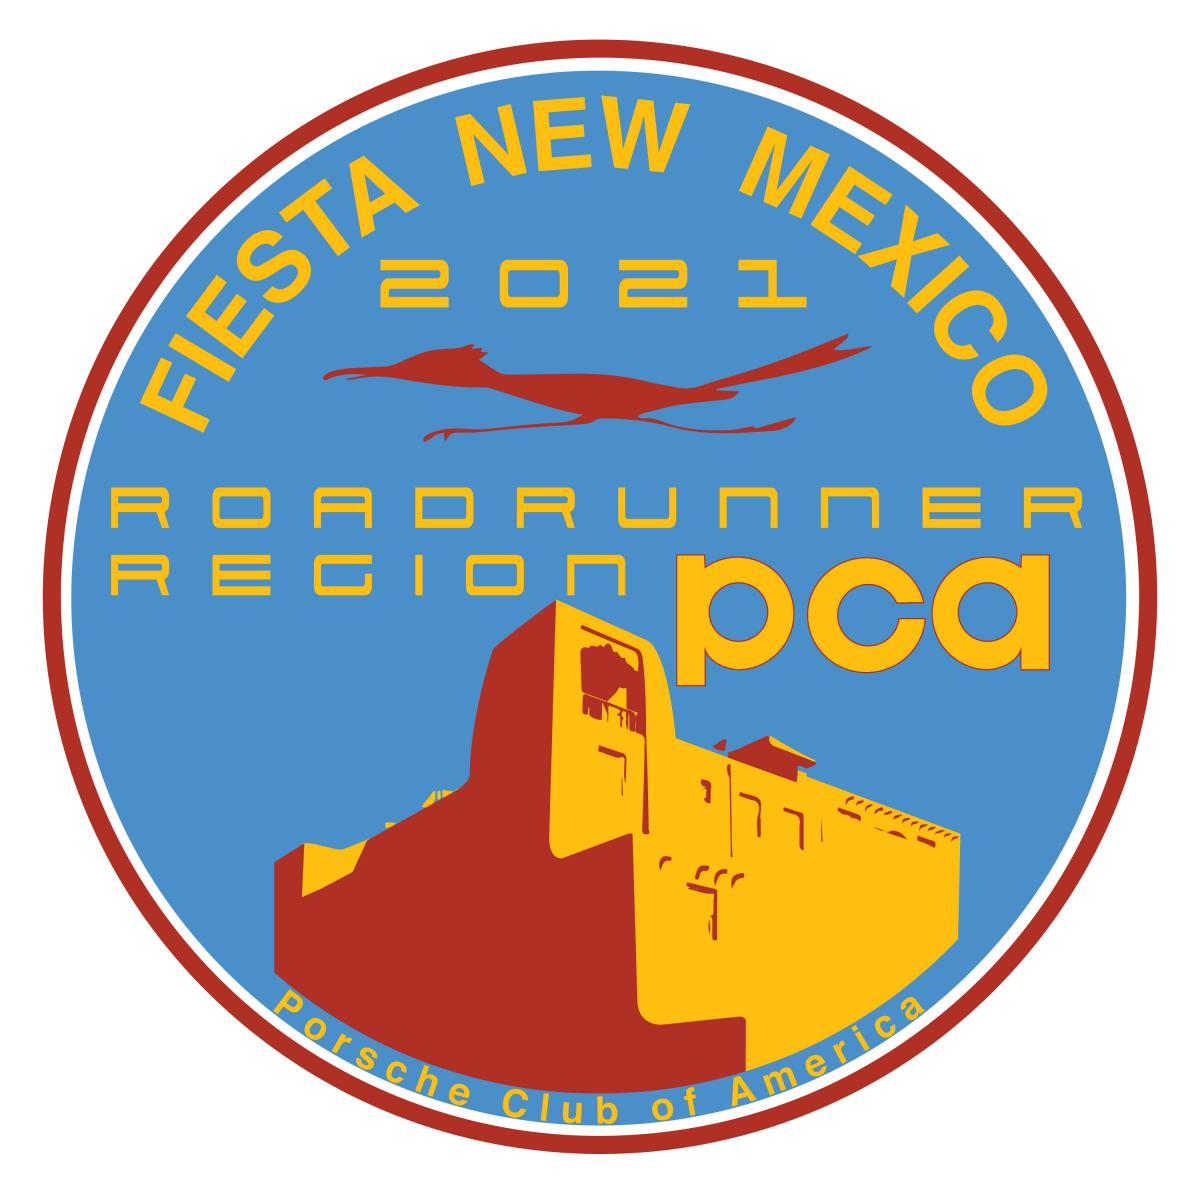 Porsche Club of America Event - Fiesta New Mexico 2021